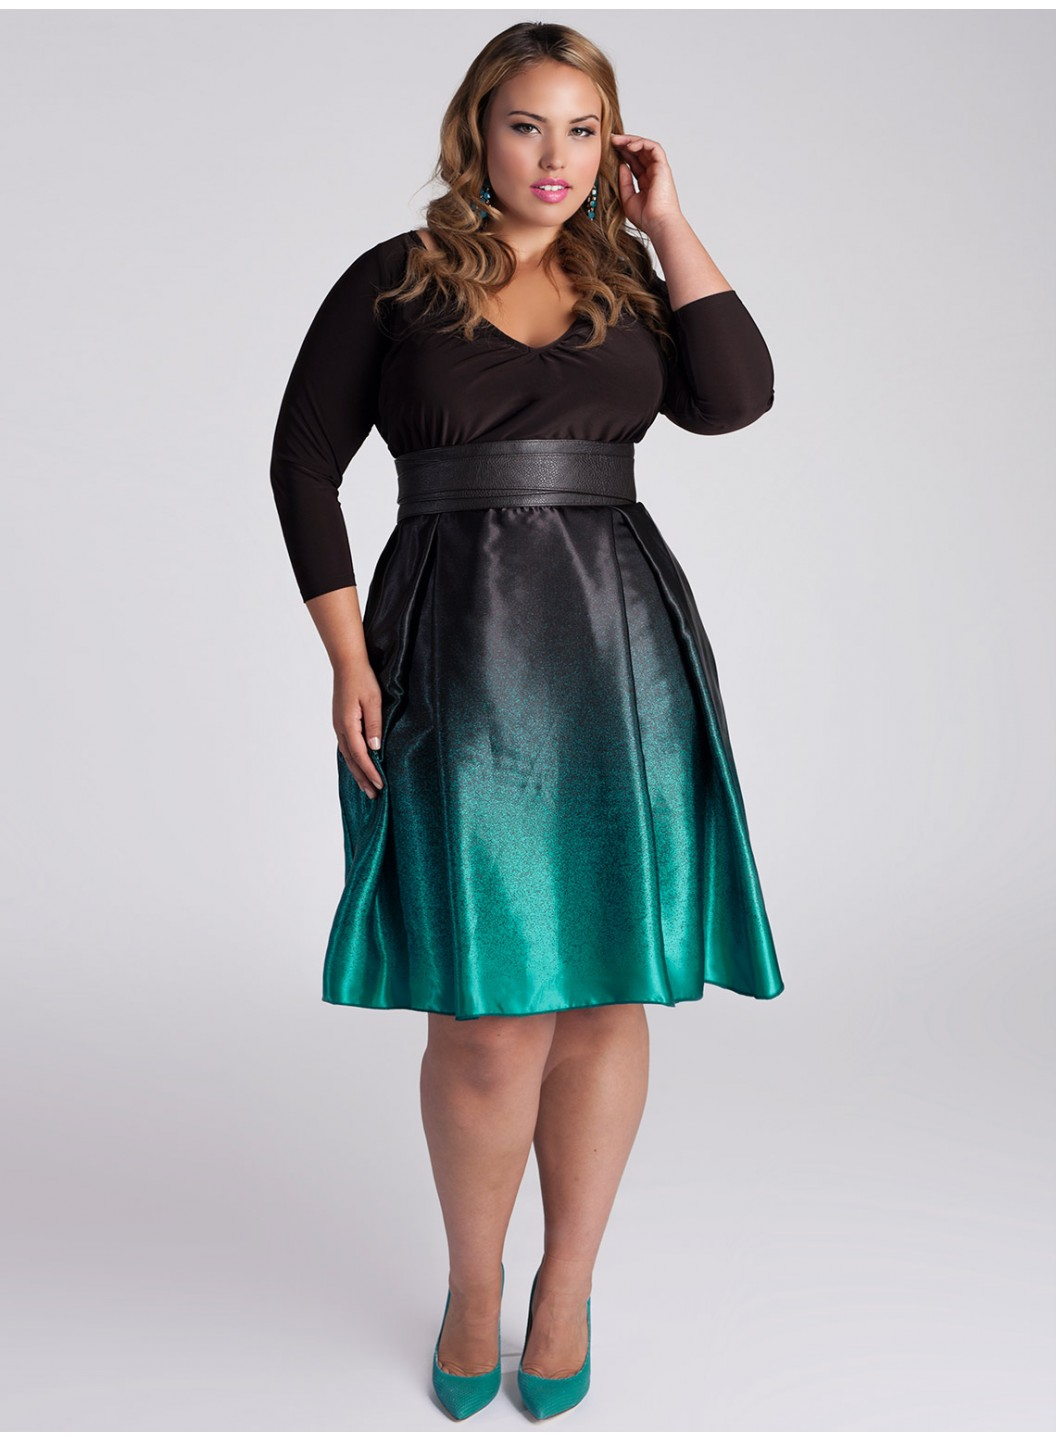 Pick out a sophisticated plus size evening gown, a lacy full skirted midi or a little black number to pull off the look you want. Enjoy a casual day with family and friends? Spend Sunday morning brunching in a casual plus size dress available in eye-catching designs and colors. Pair it with the right jewelry, and you'll be all set. Thanks to Sears' selection of women's plus size dresses, dressing up for any event is .